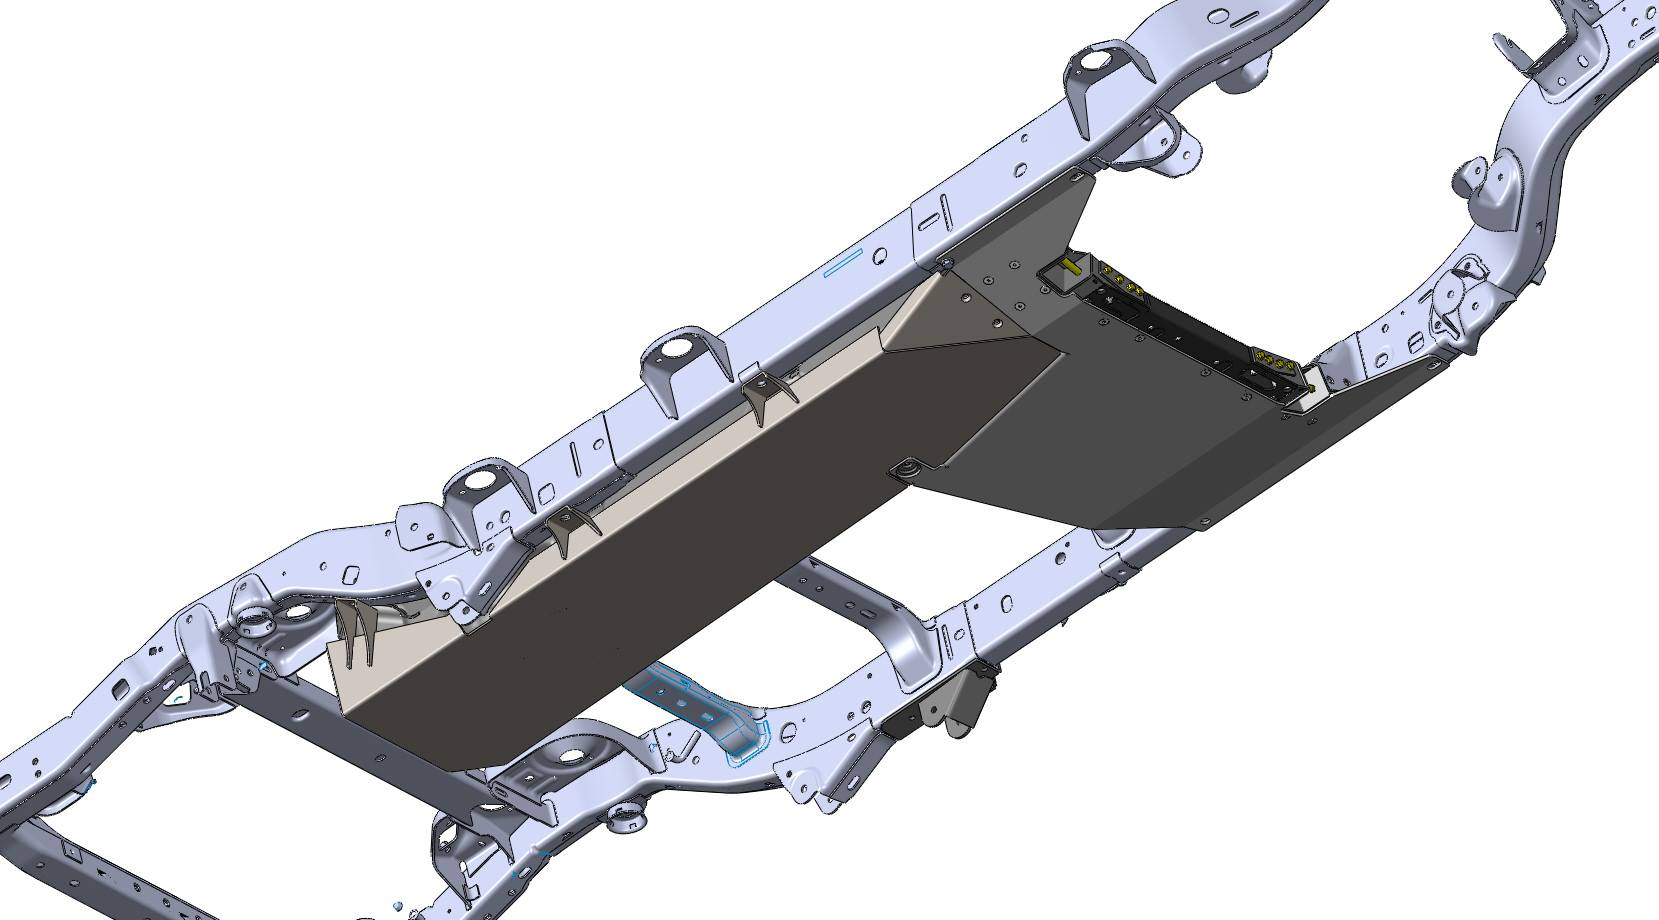 Jeep Wrangler Gas Tank Skid Plate 4 Door 2007 2017 Jk Clayton Offroad Diagram View The Full Image